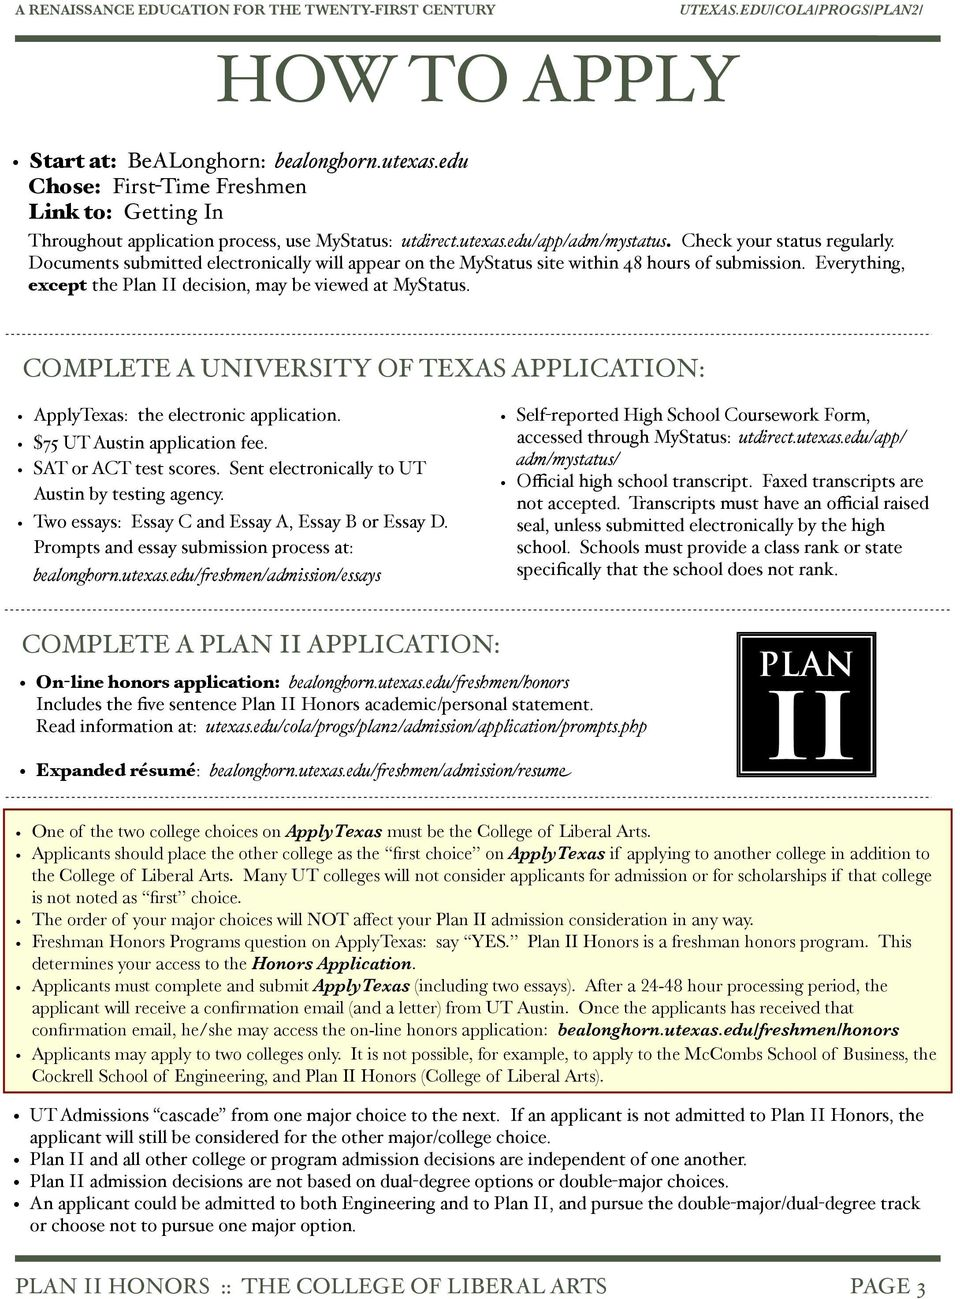 uc application essay examples statement writing uc admissions  college application essay c texas admission application essay c apply texas examples essay application process